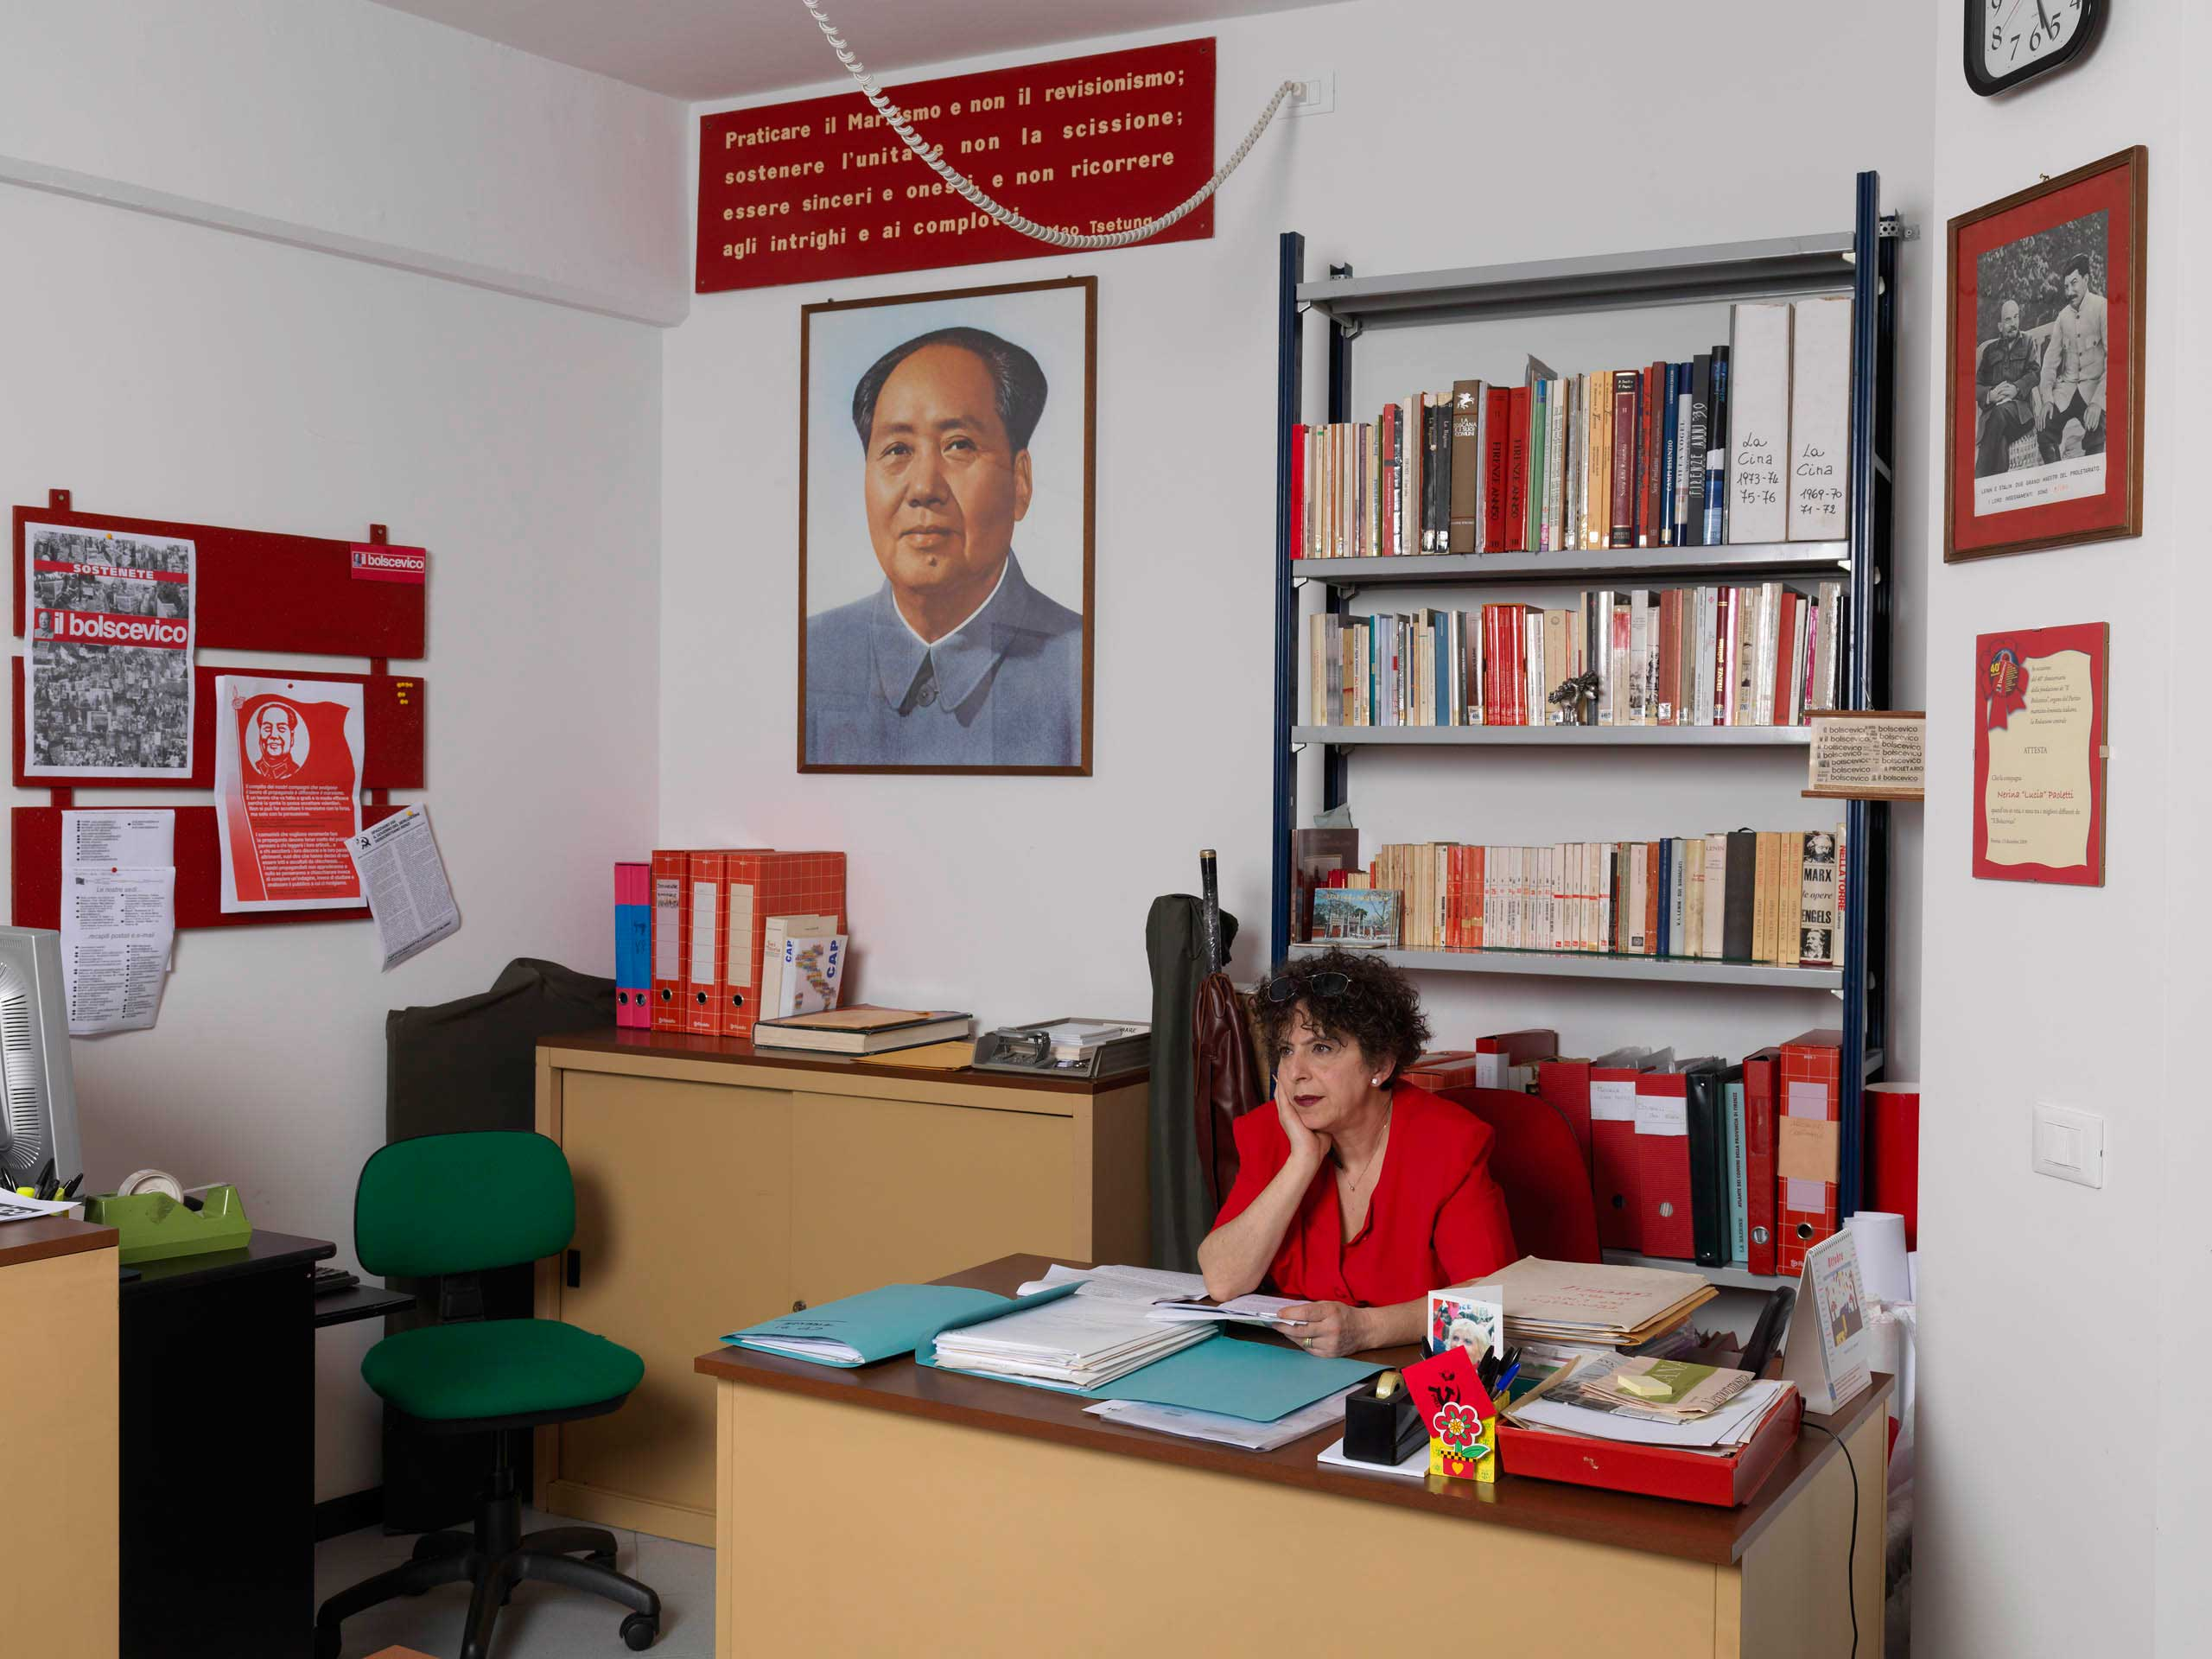 Cinzia, a member of the  Nerina 'Lucia' Paoletti,  party in the Italian Marxist-Leninist Party headquarters in Florence, Italy.